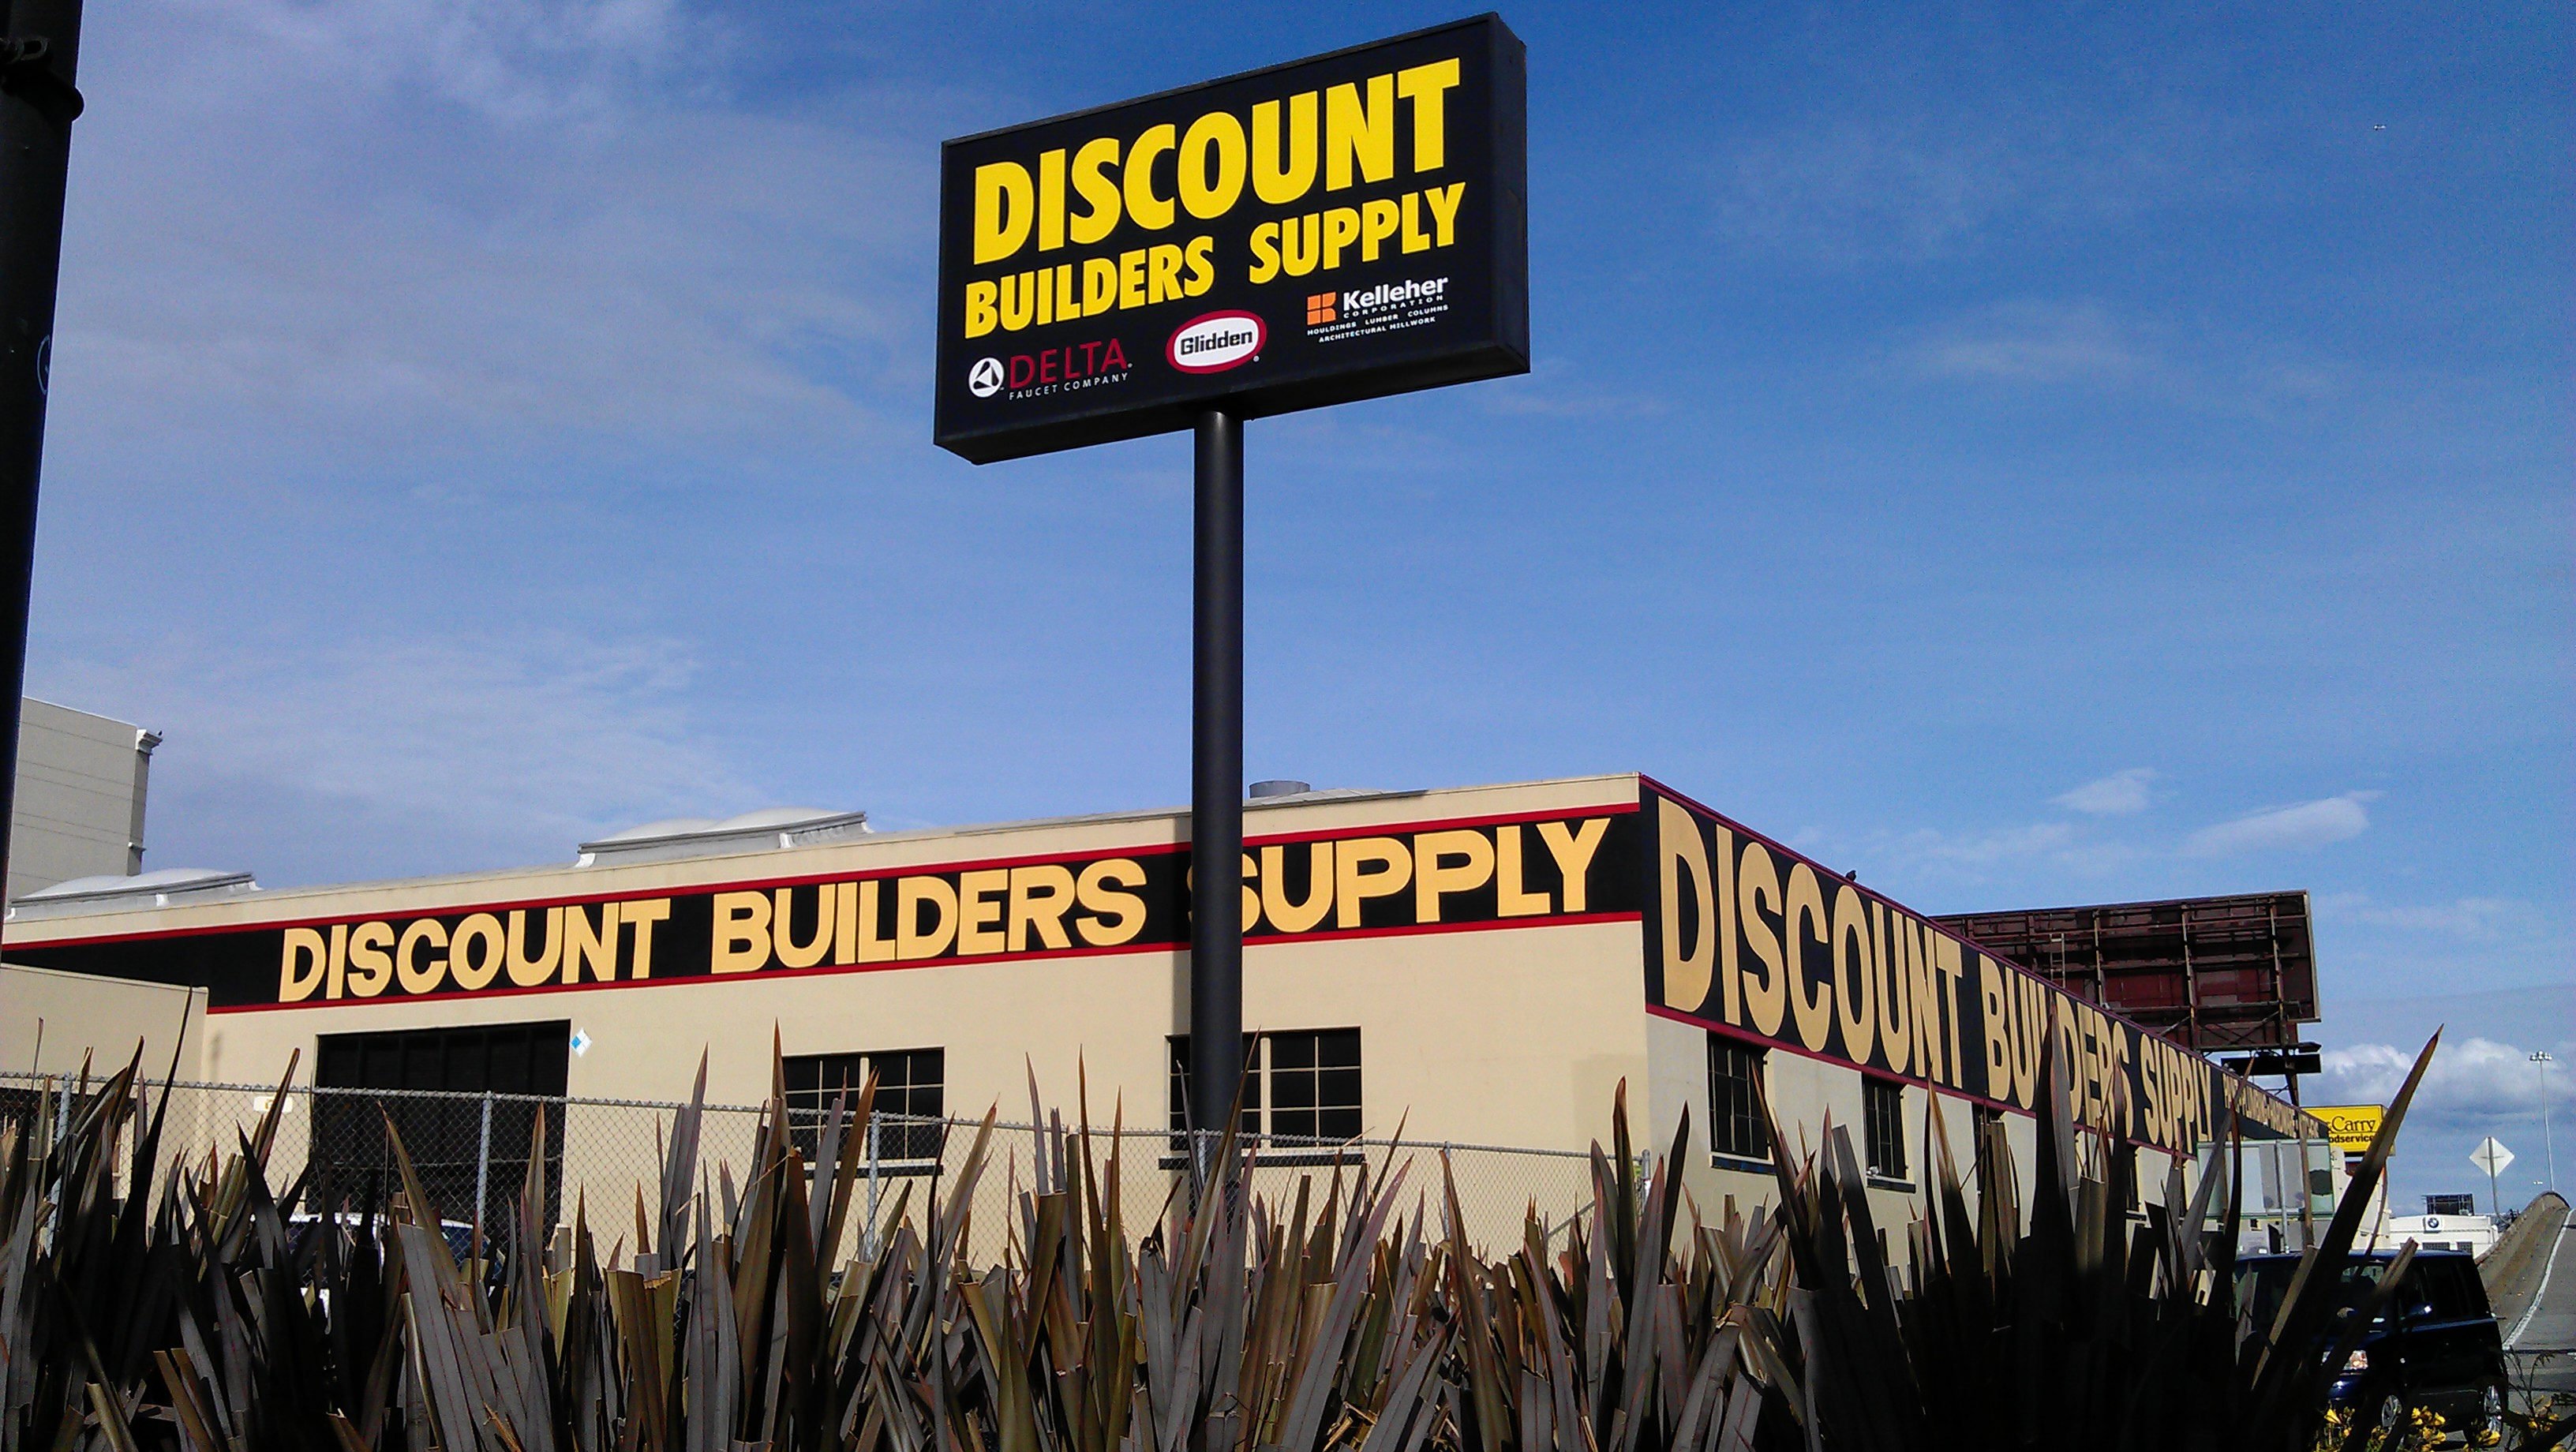 Discount Builders Supply image 7